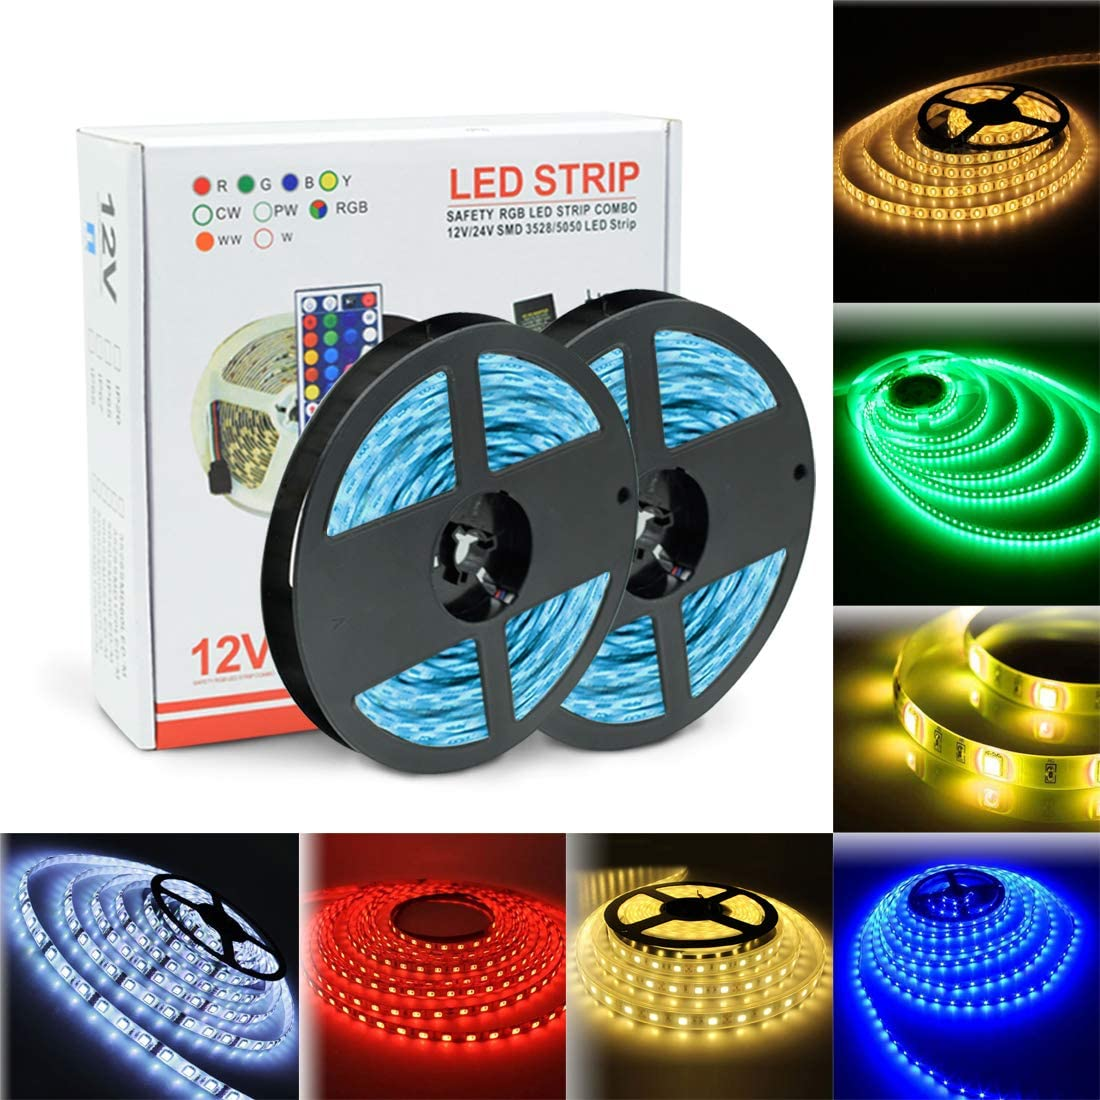 LED Strip Lights 32.8ft, RGB Colored Rope Light Strip, Flexible LED Tape Light for Bedroom Home and Holiday Decoration,Strong 3M Adhesive Cutting Design